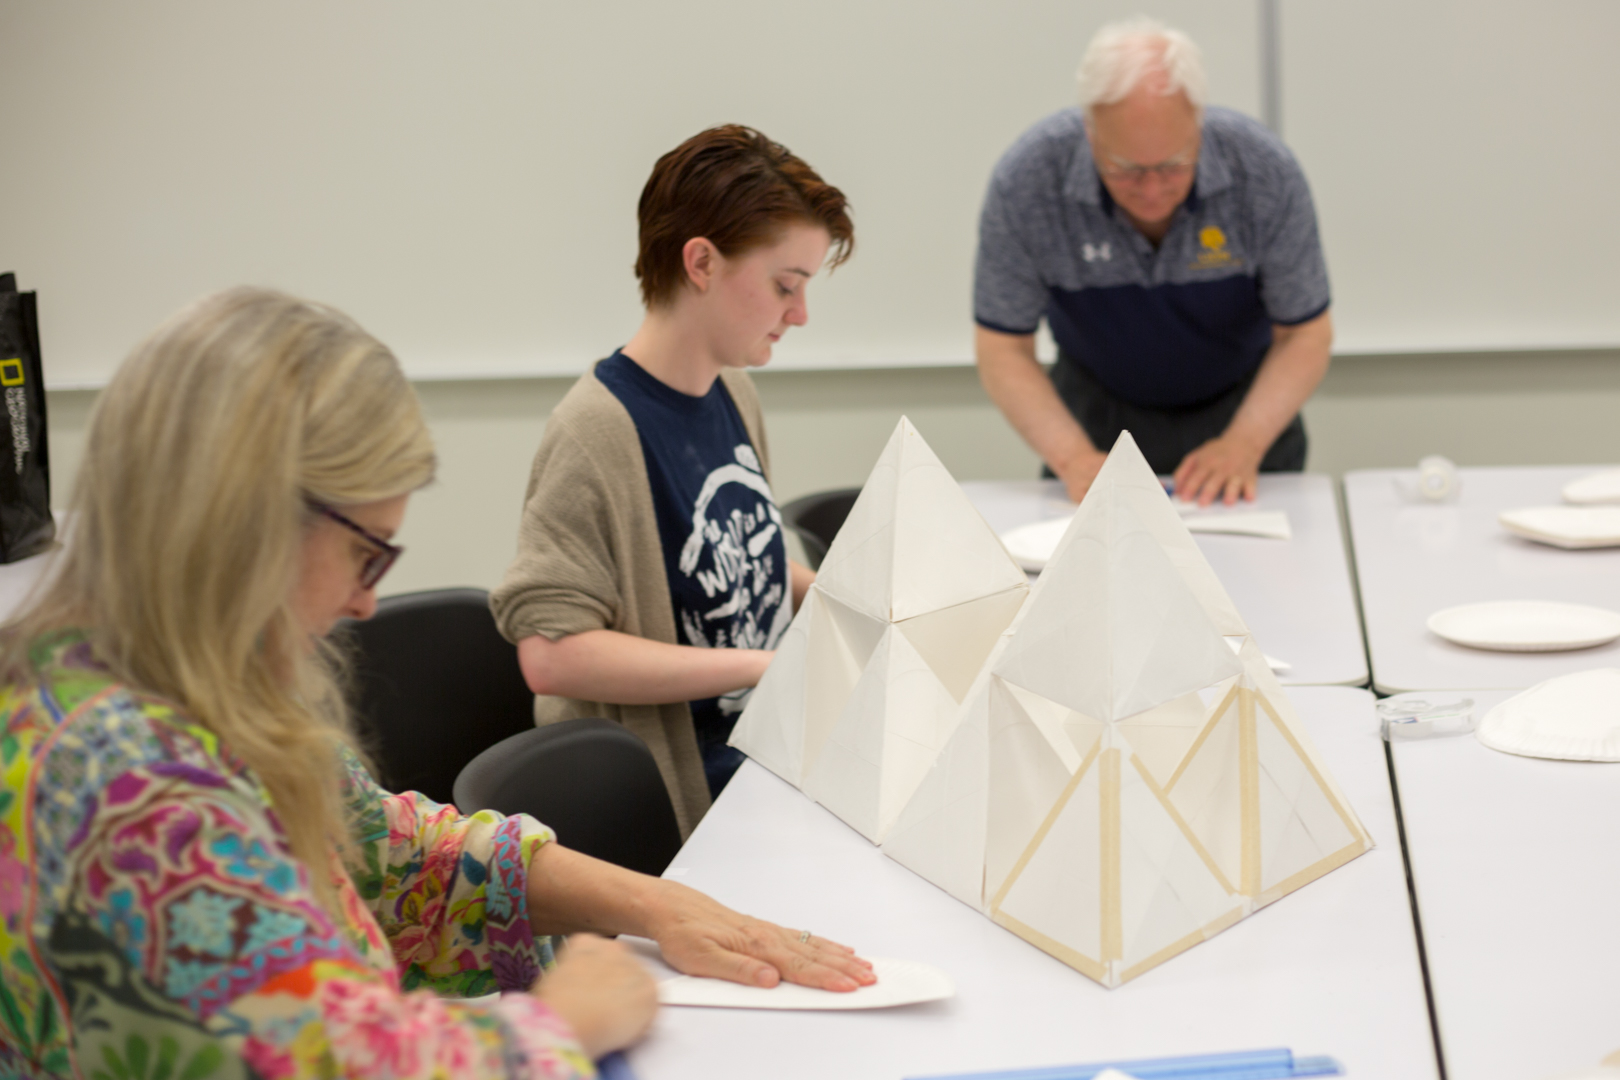 The+Paper+Plate+Sculpture+Workshop%2C+led+by+Wyman+Williams+%28back%29%2C+had+participants+fold+paper+plates+to+form+different+shapes+or+to+combine+these+shapes+into+a+sculpture.